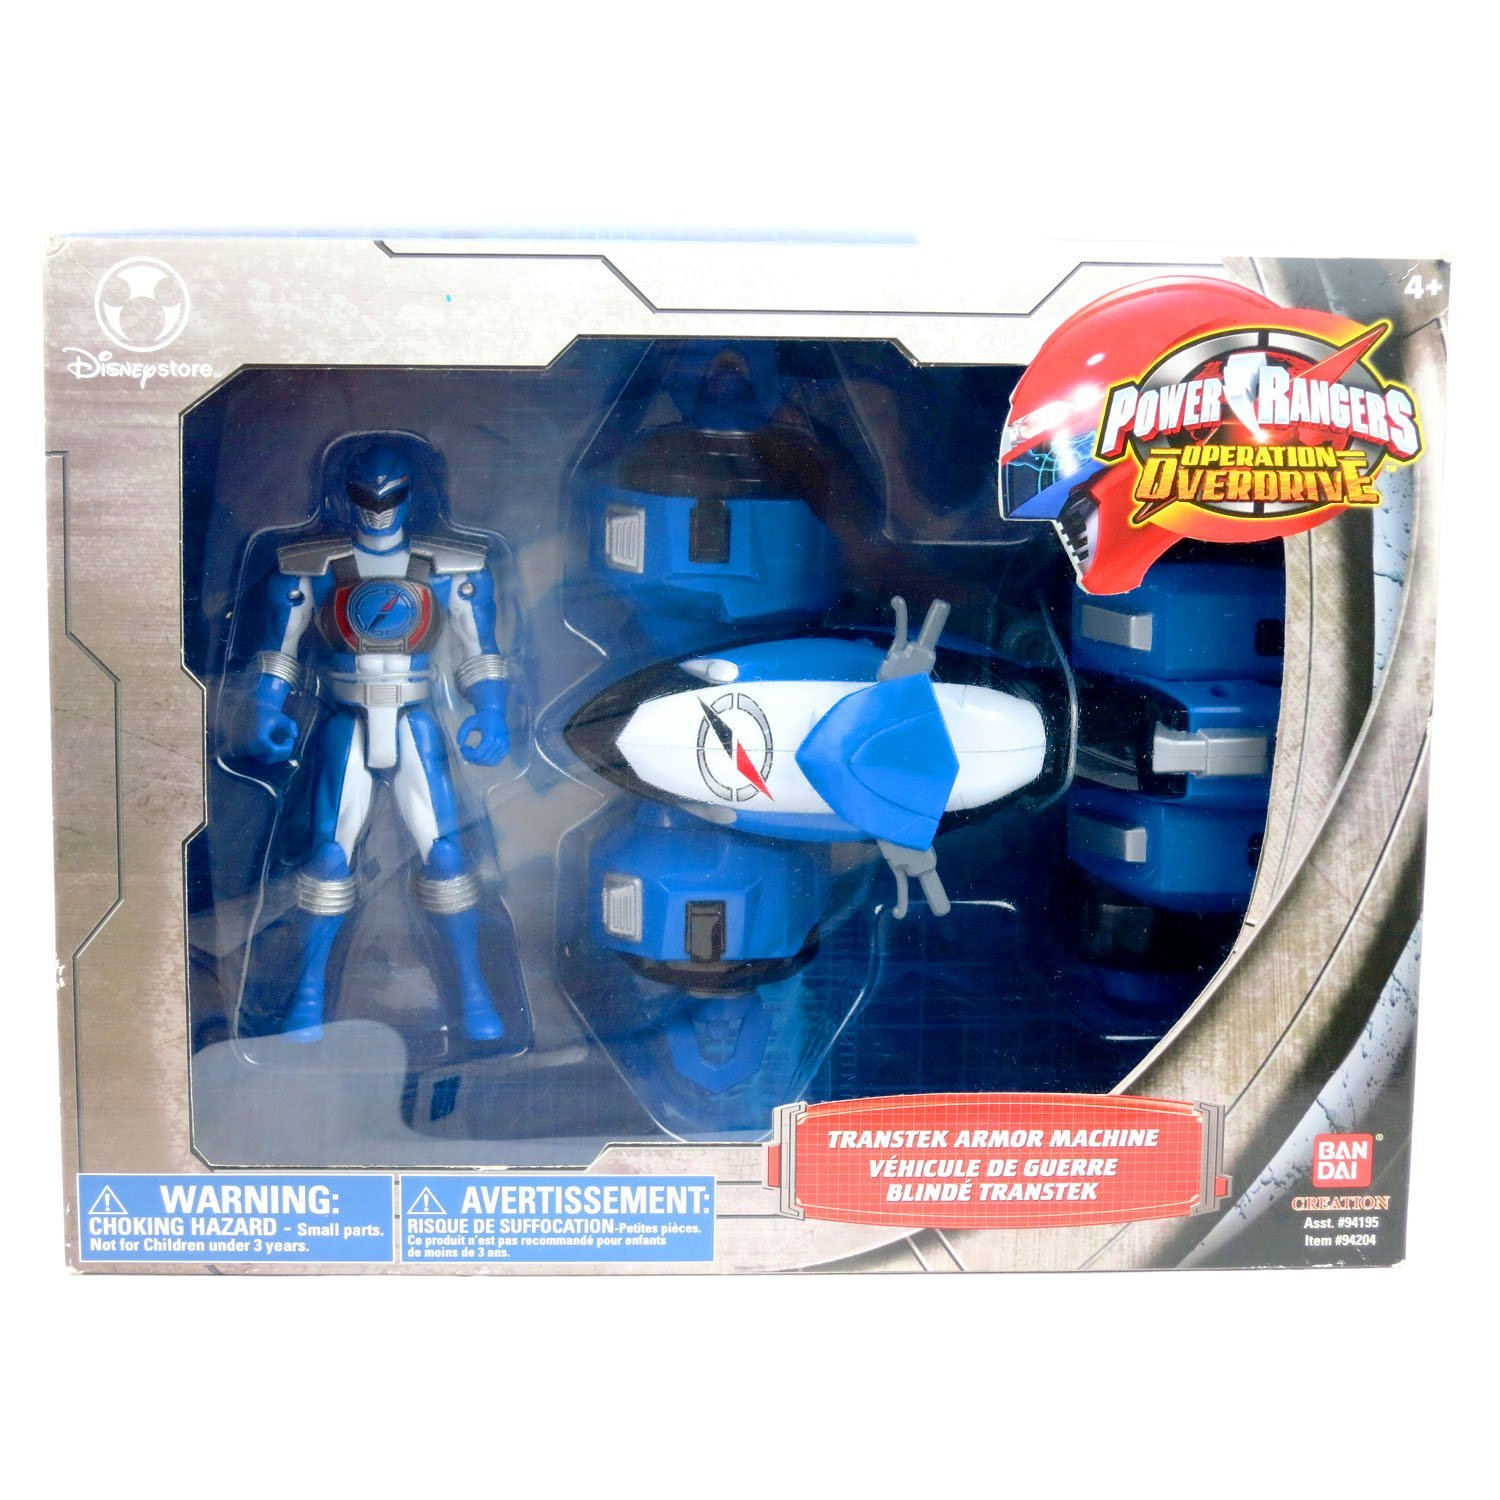 Bandai Year 2006 Power Rangers Operation Overdrive Series 7 Inch Long Vehicle Set - BLUE TRANSTEK ARMOR MACHINE with Blue Power Ranger